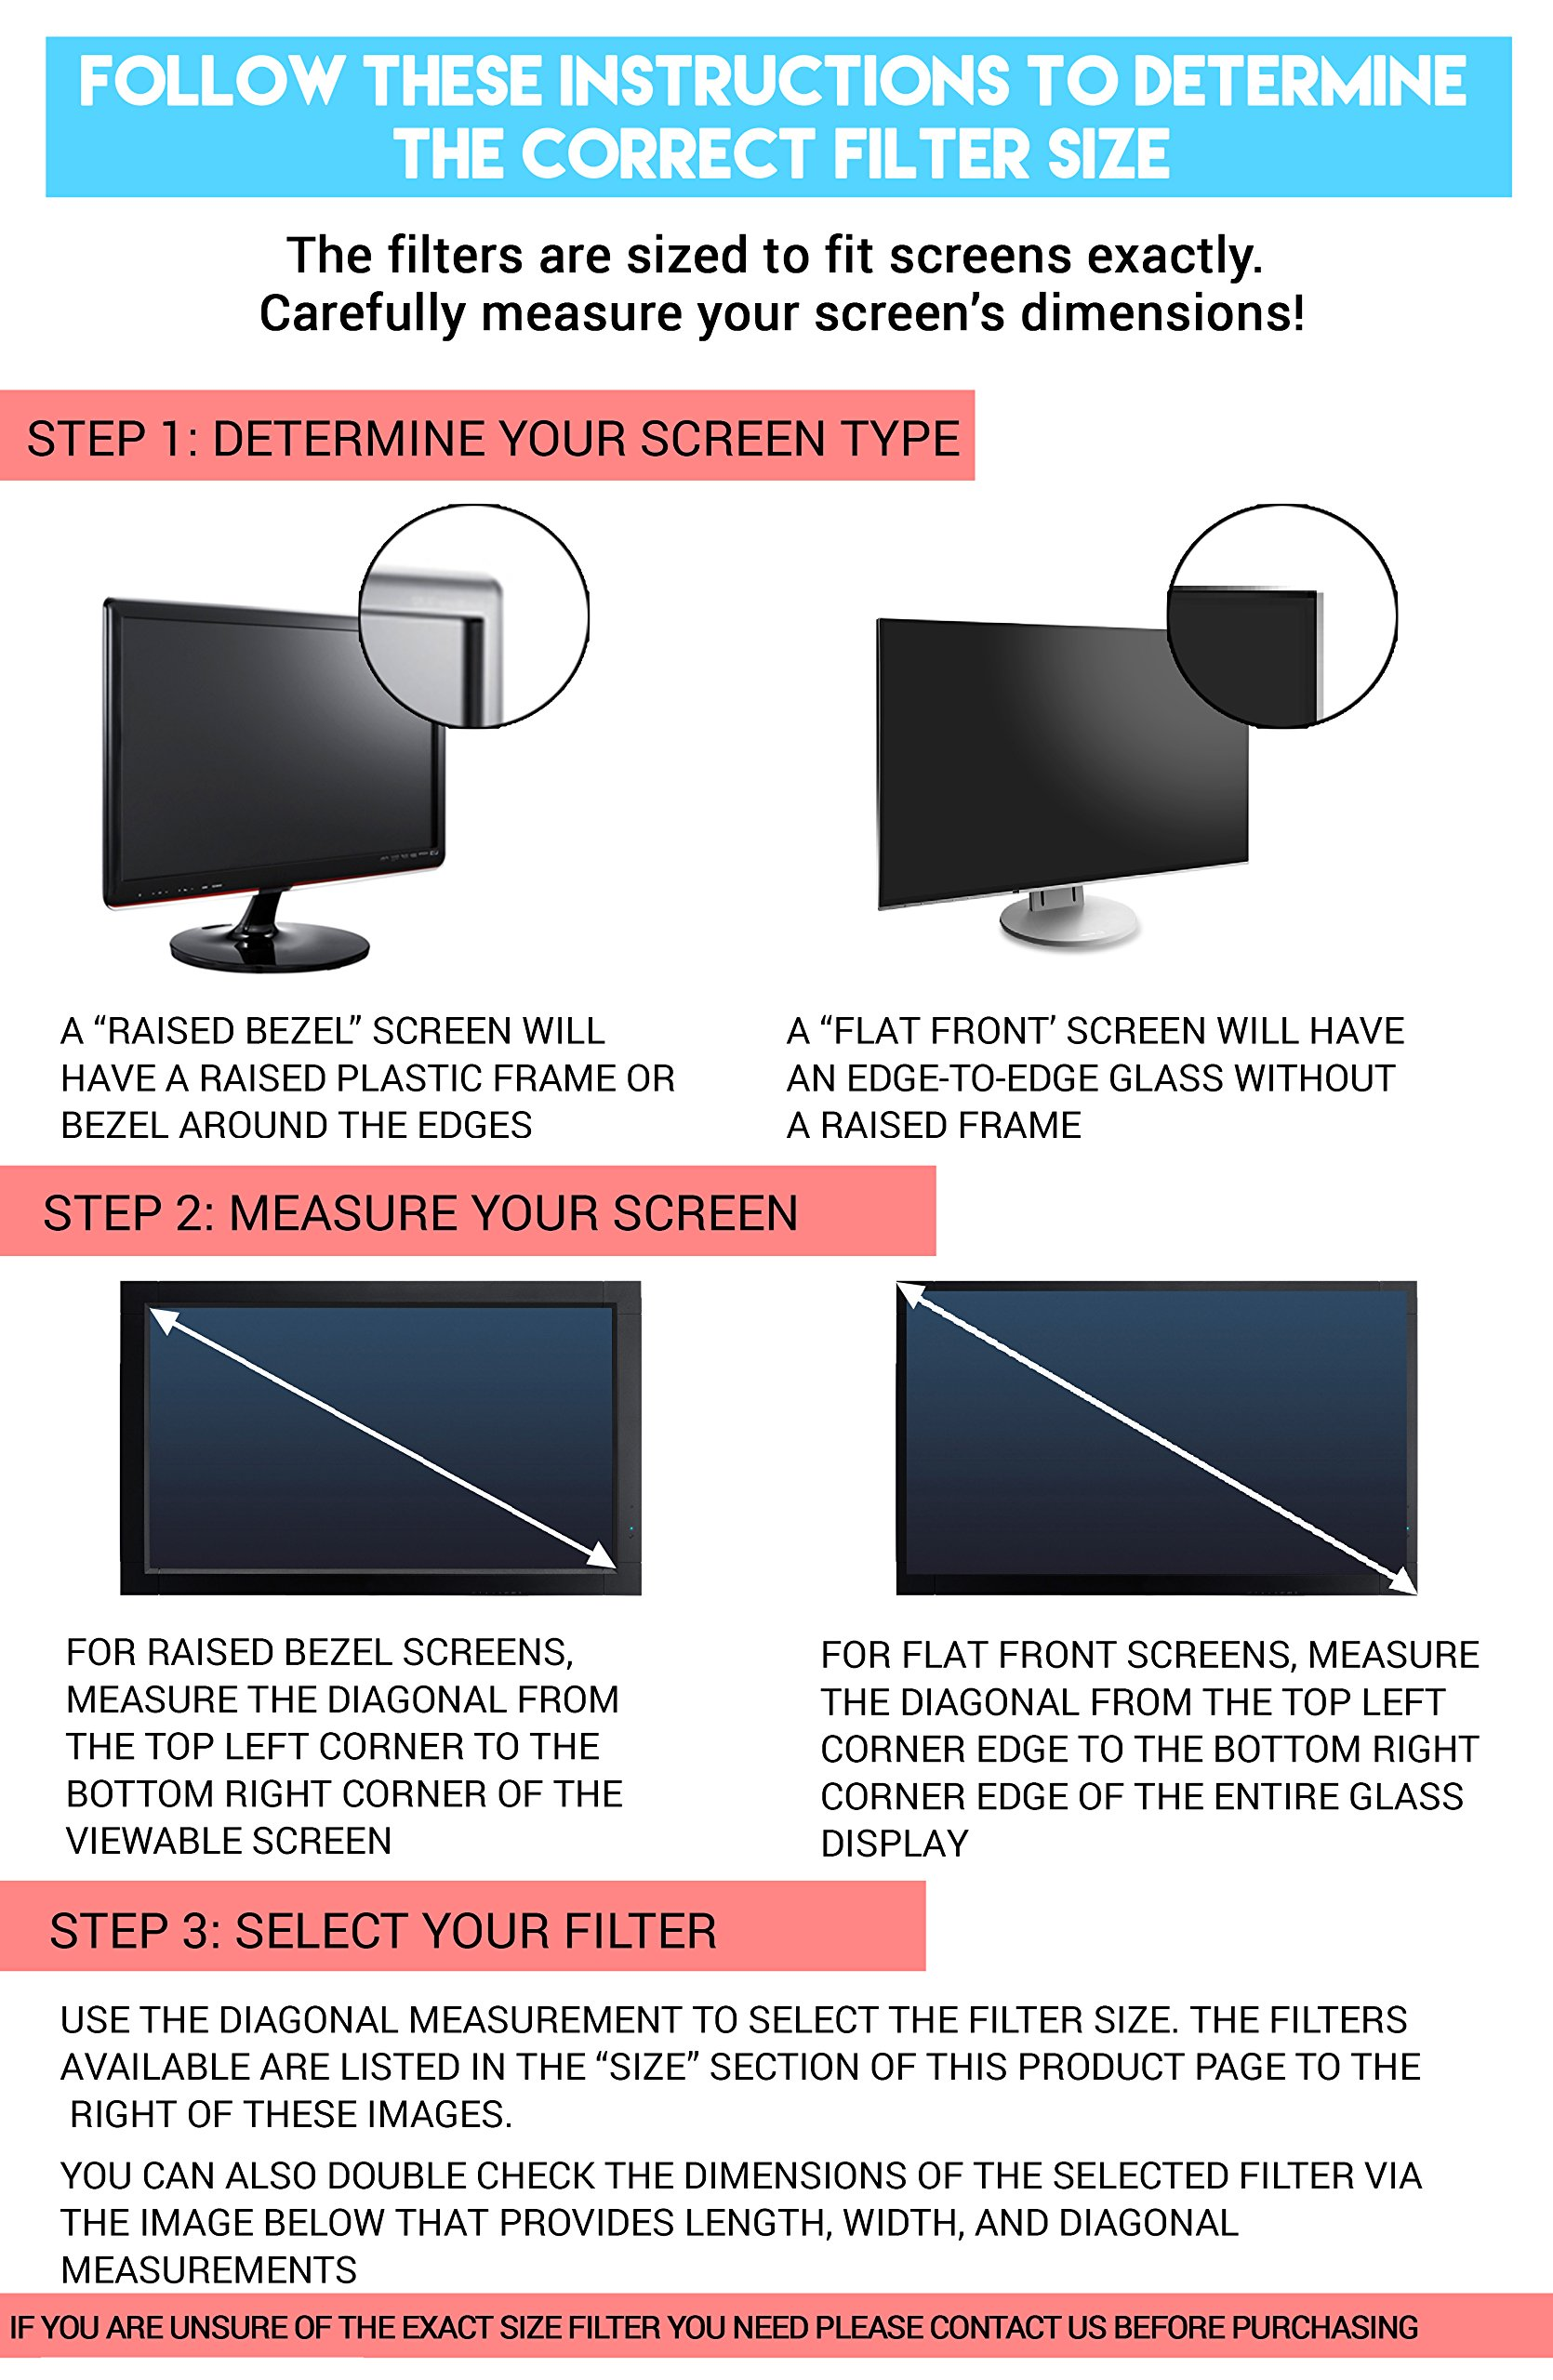 24-Inch Computer Privacy Screen Filter for Desktop Monitors (Diagonally-Measured); Anti-glare Anti-scratch Film; Protects Sensitive Confidential Data (24'' Widescreen (16:9 Aspect Ratio)) by Linnai Products (Image #3)